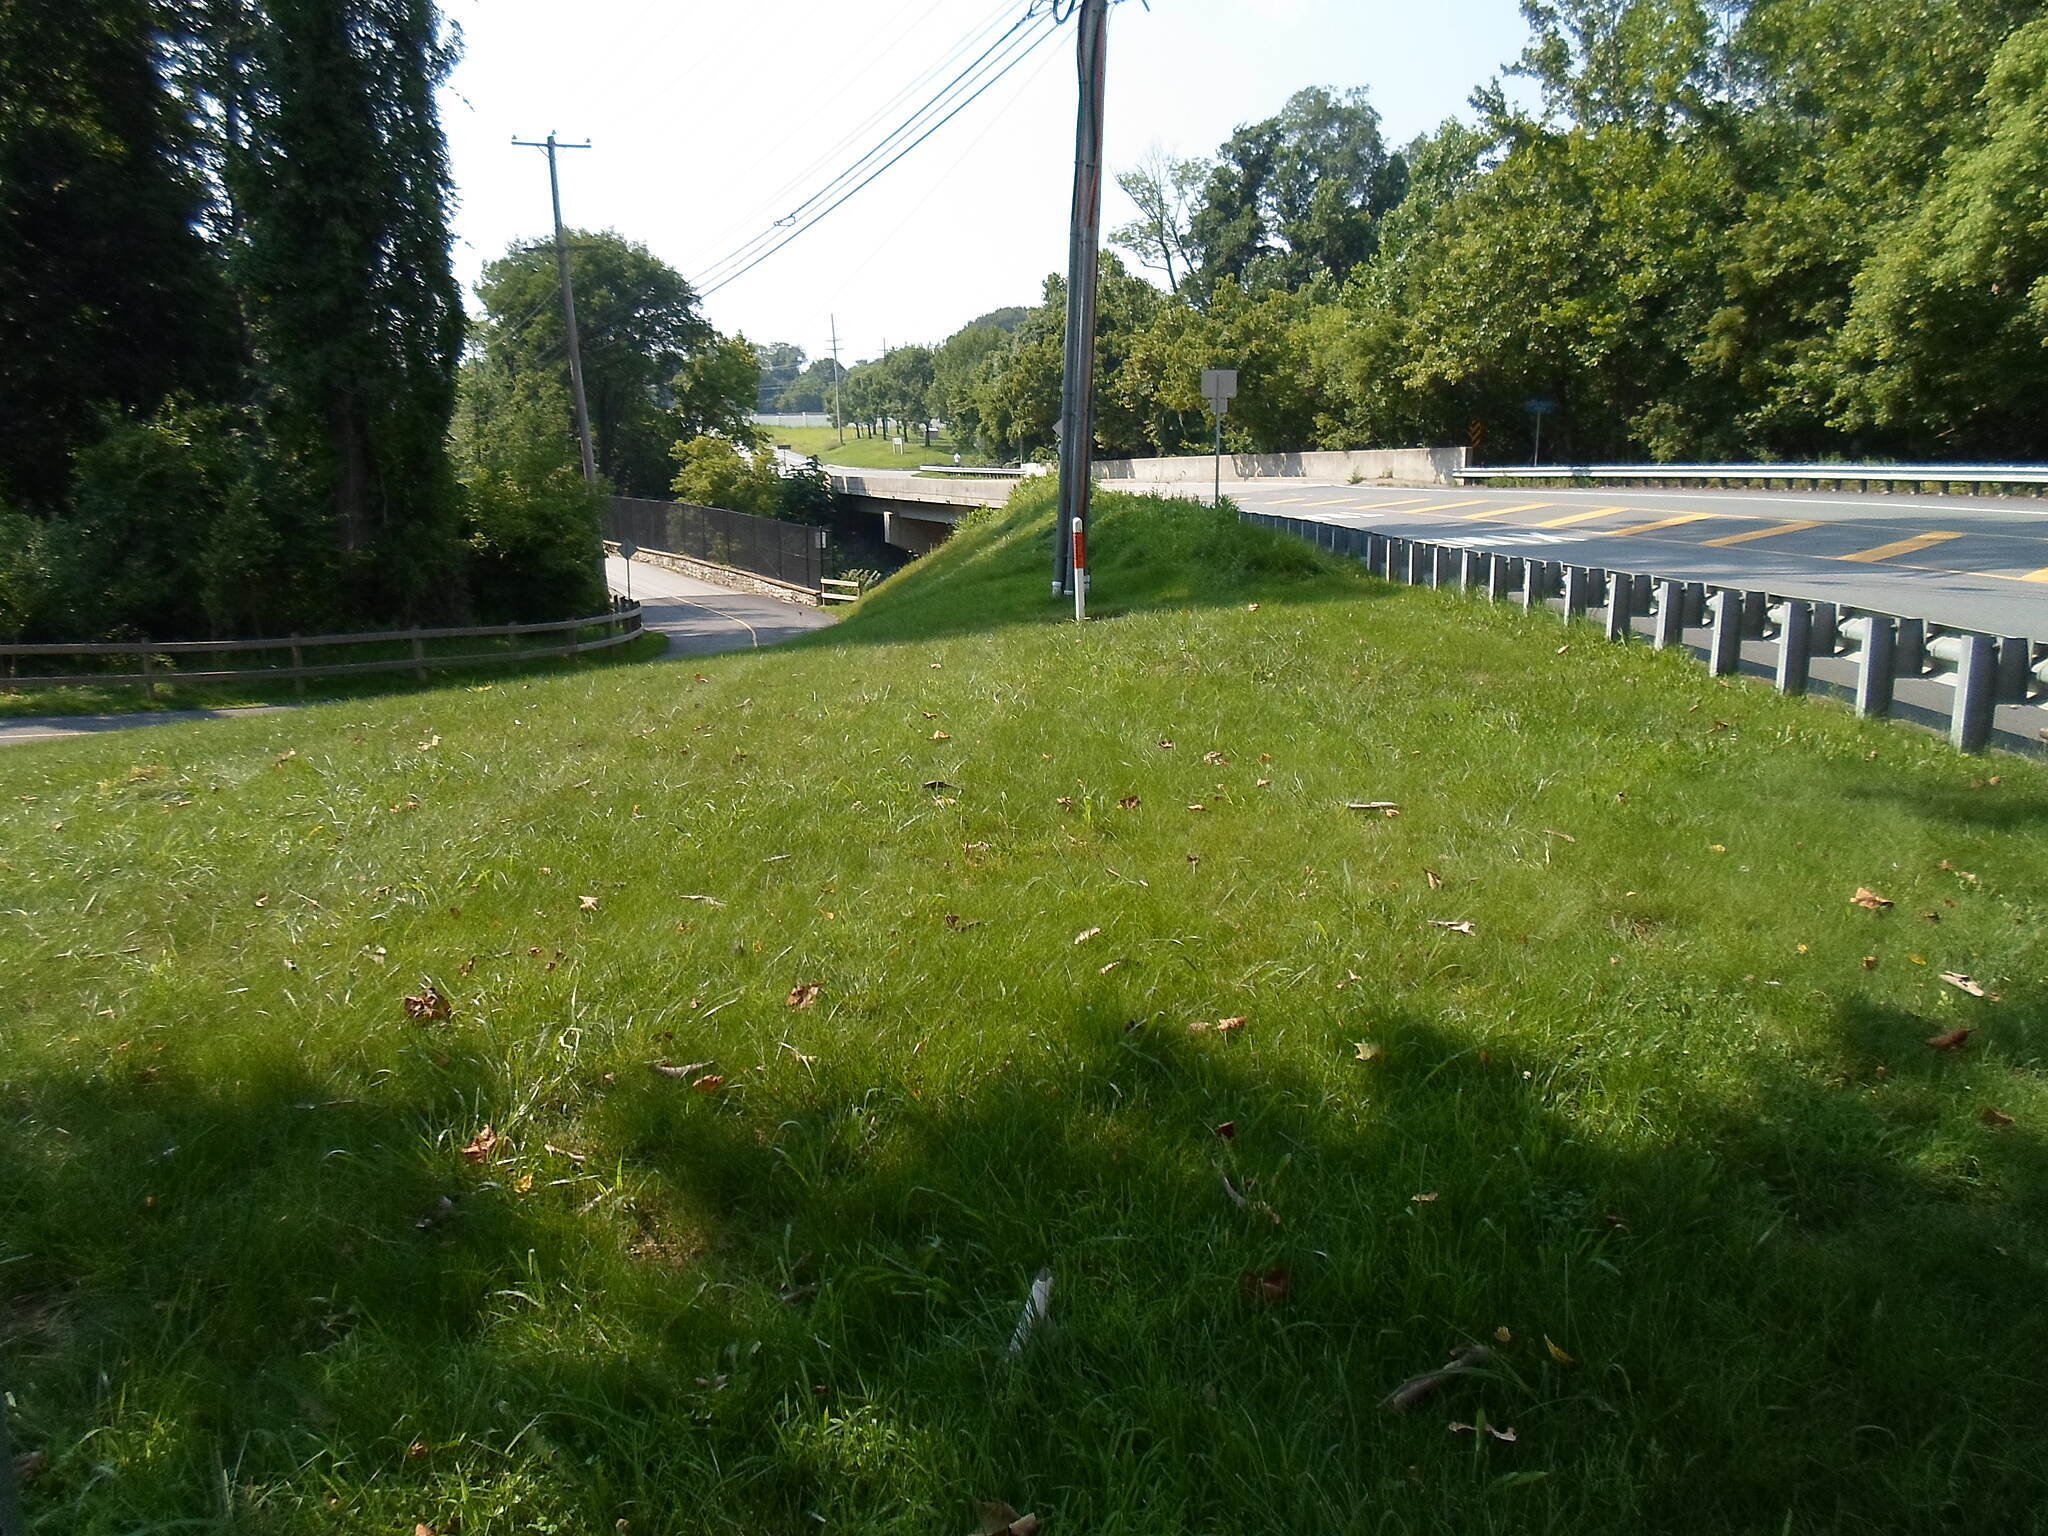 Chester Valley Trail Chester Valley Trail Refurbished trail bridge, left, and Cedar Hollow Road bridge, right, side-by-side on the east end of the Vanguard Corporate Center. Taken July 2015.